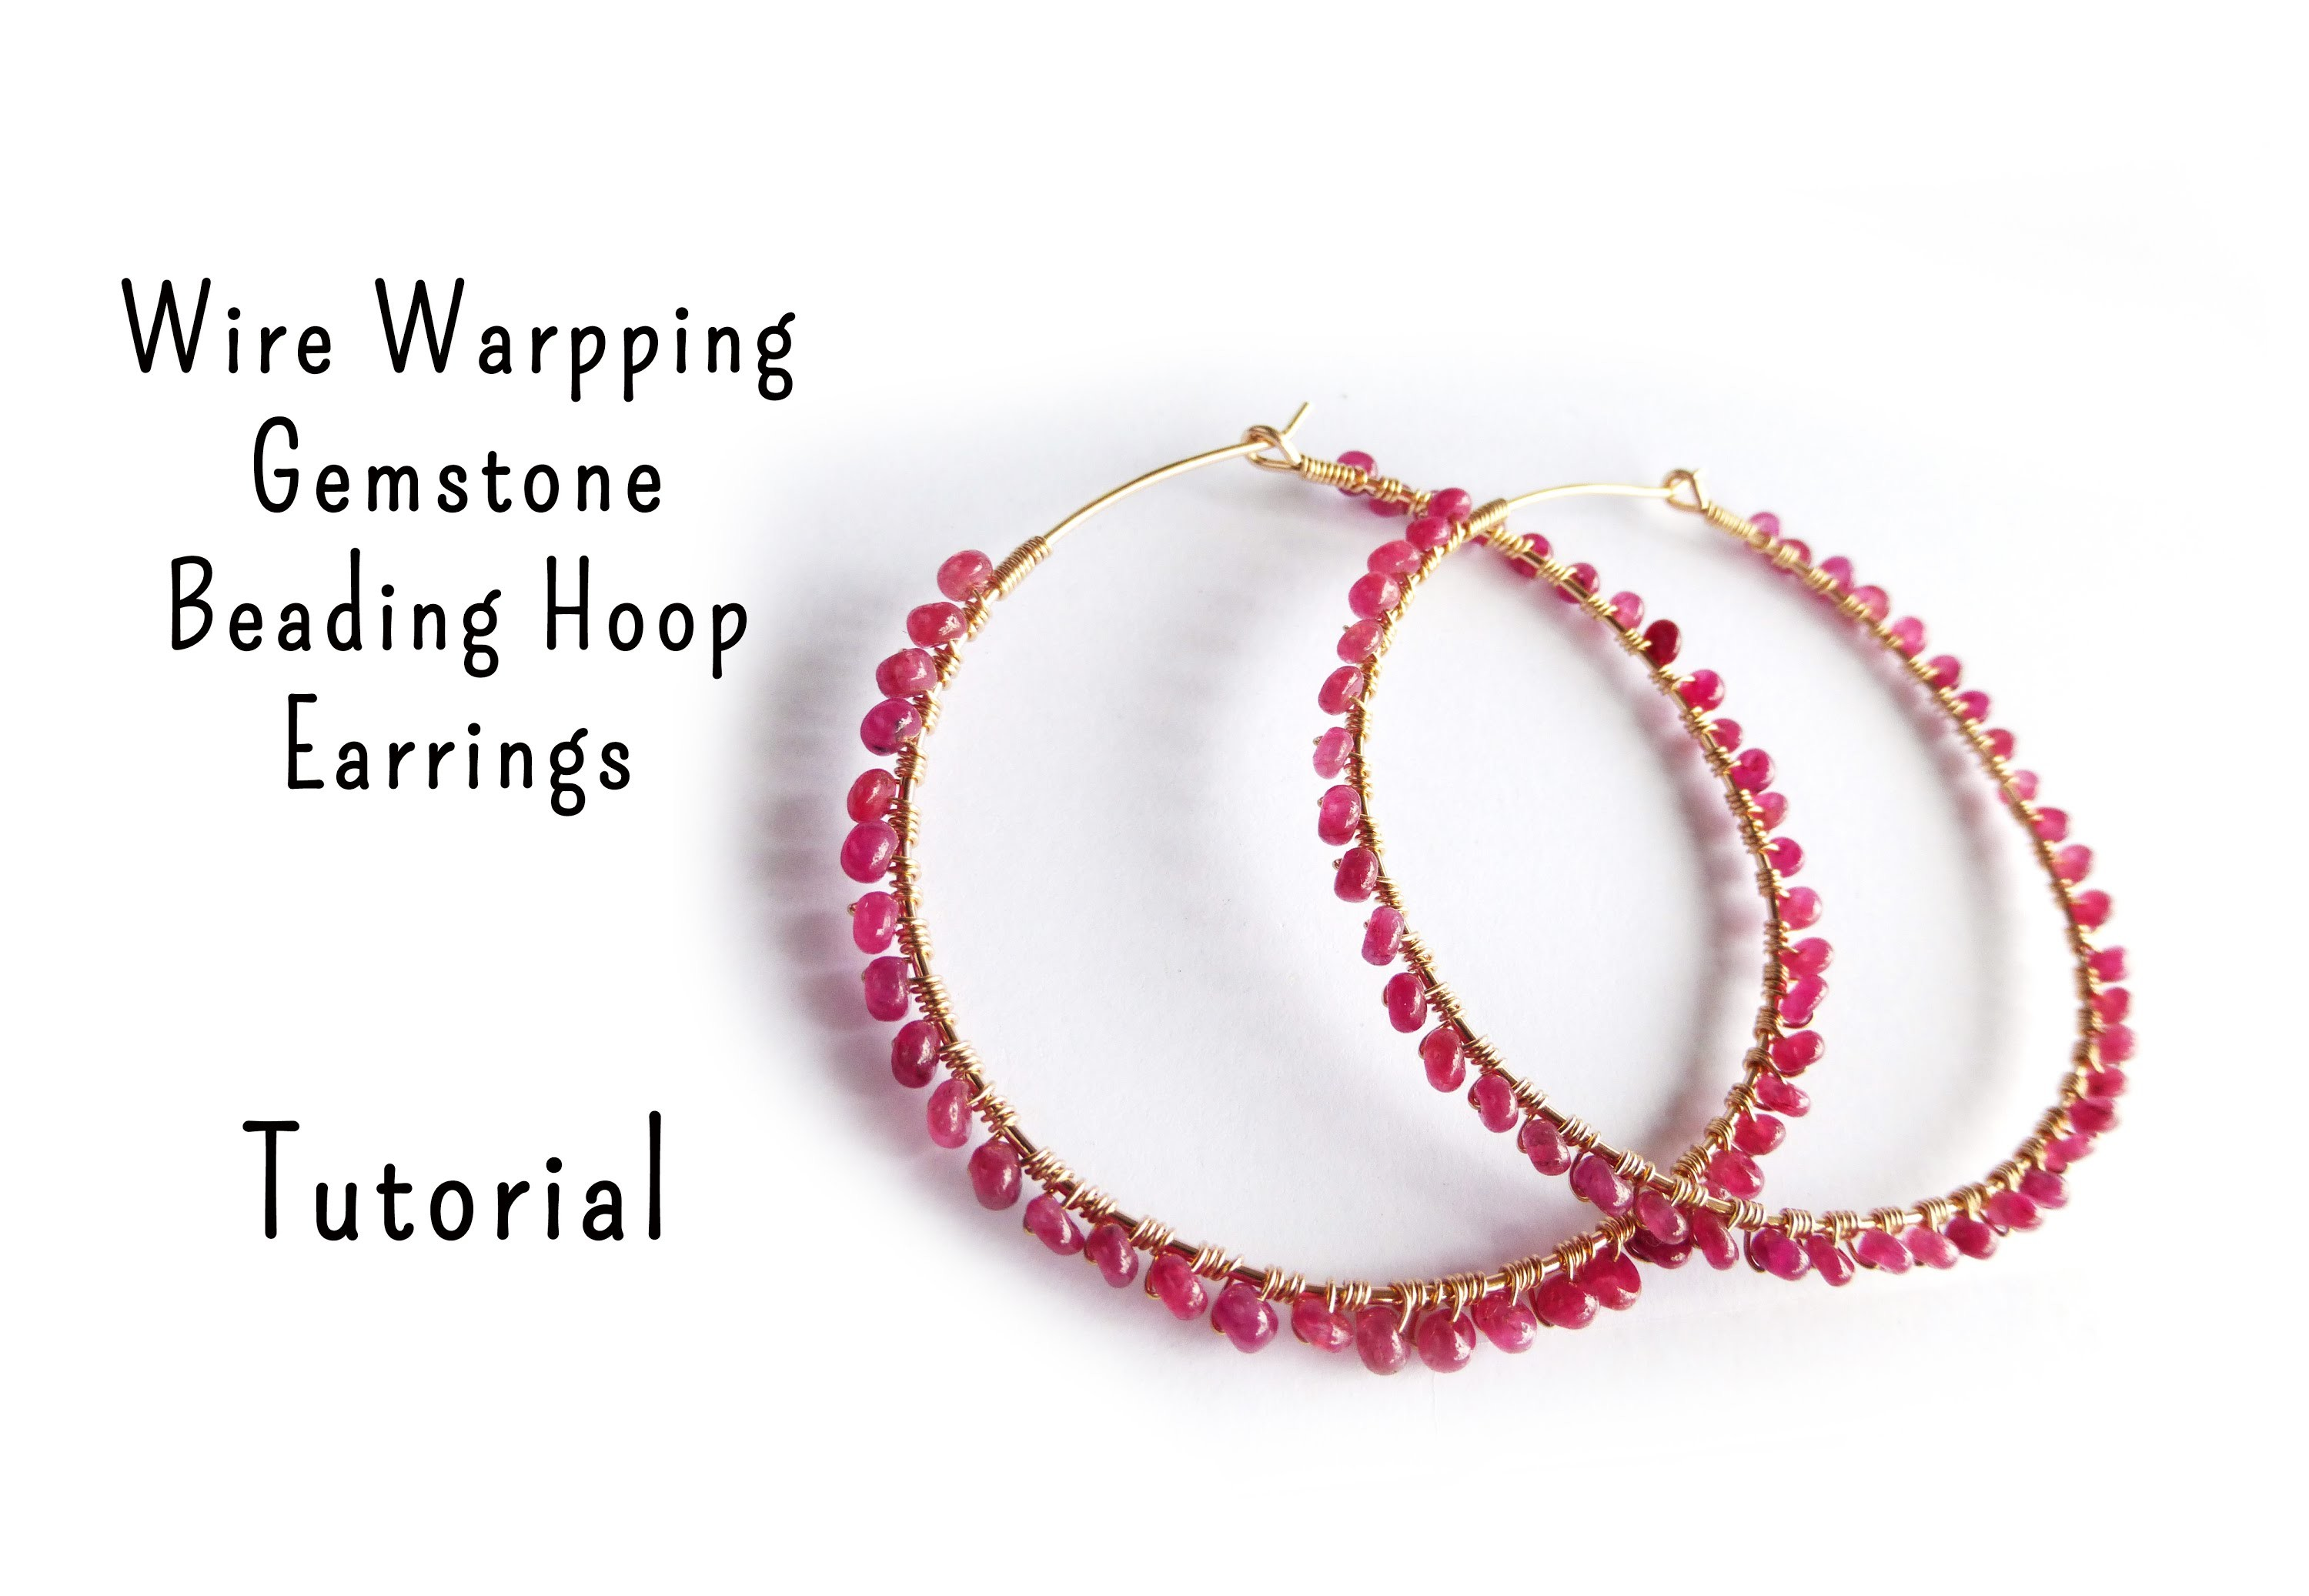 Gemstone Wire Wrapped Hoop Earrings Tutorial by Mbeadstore